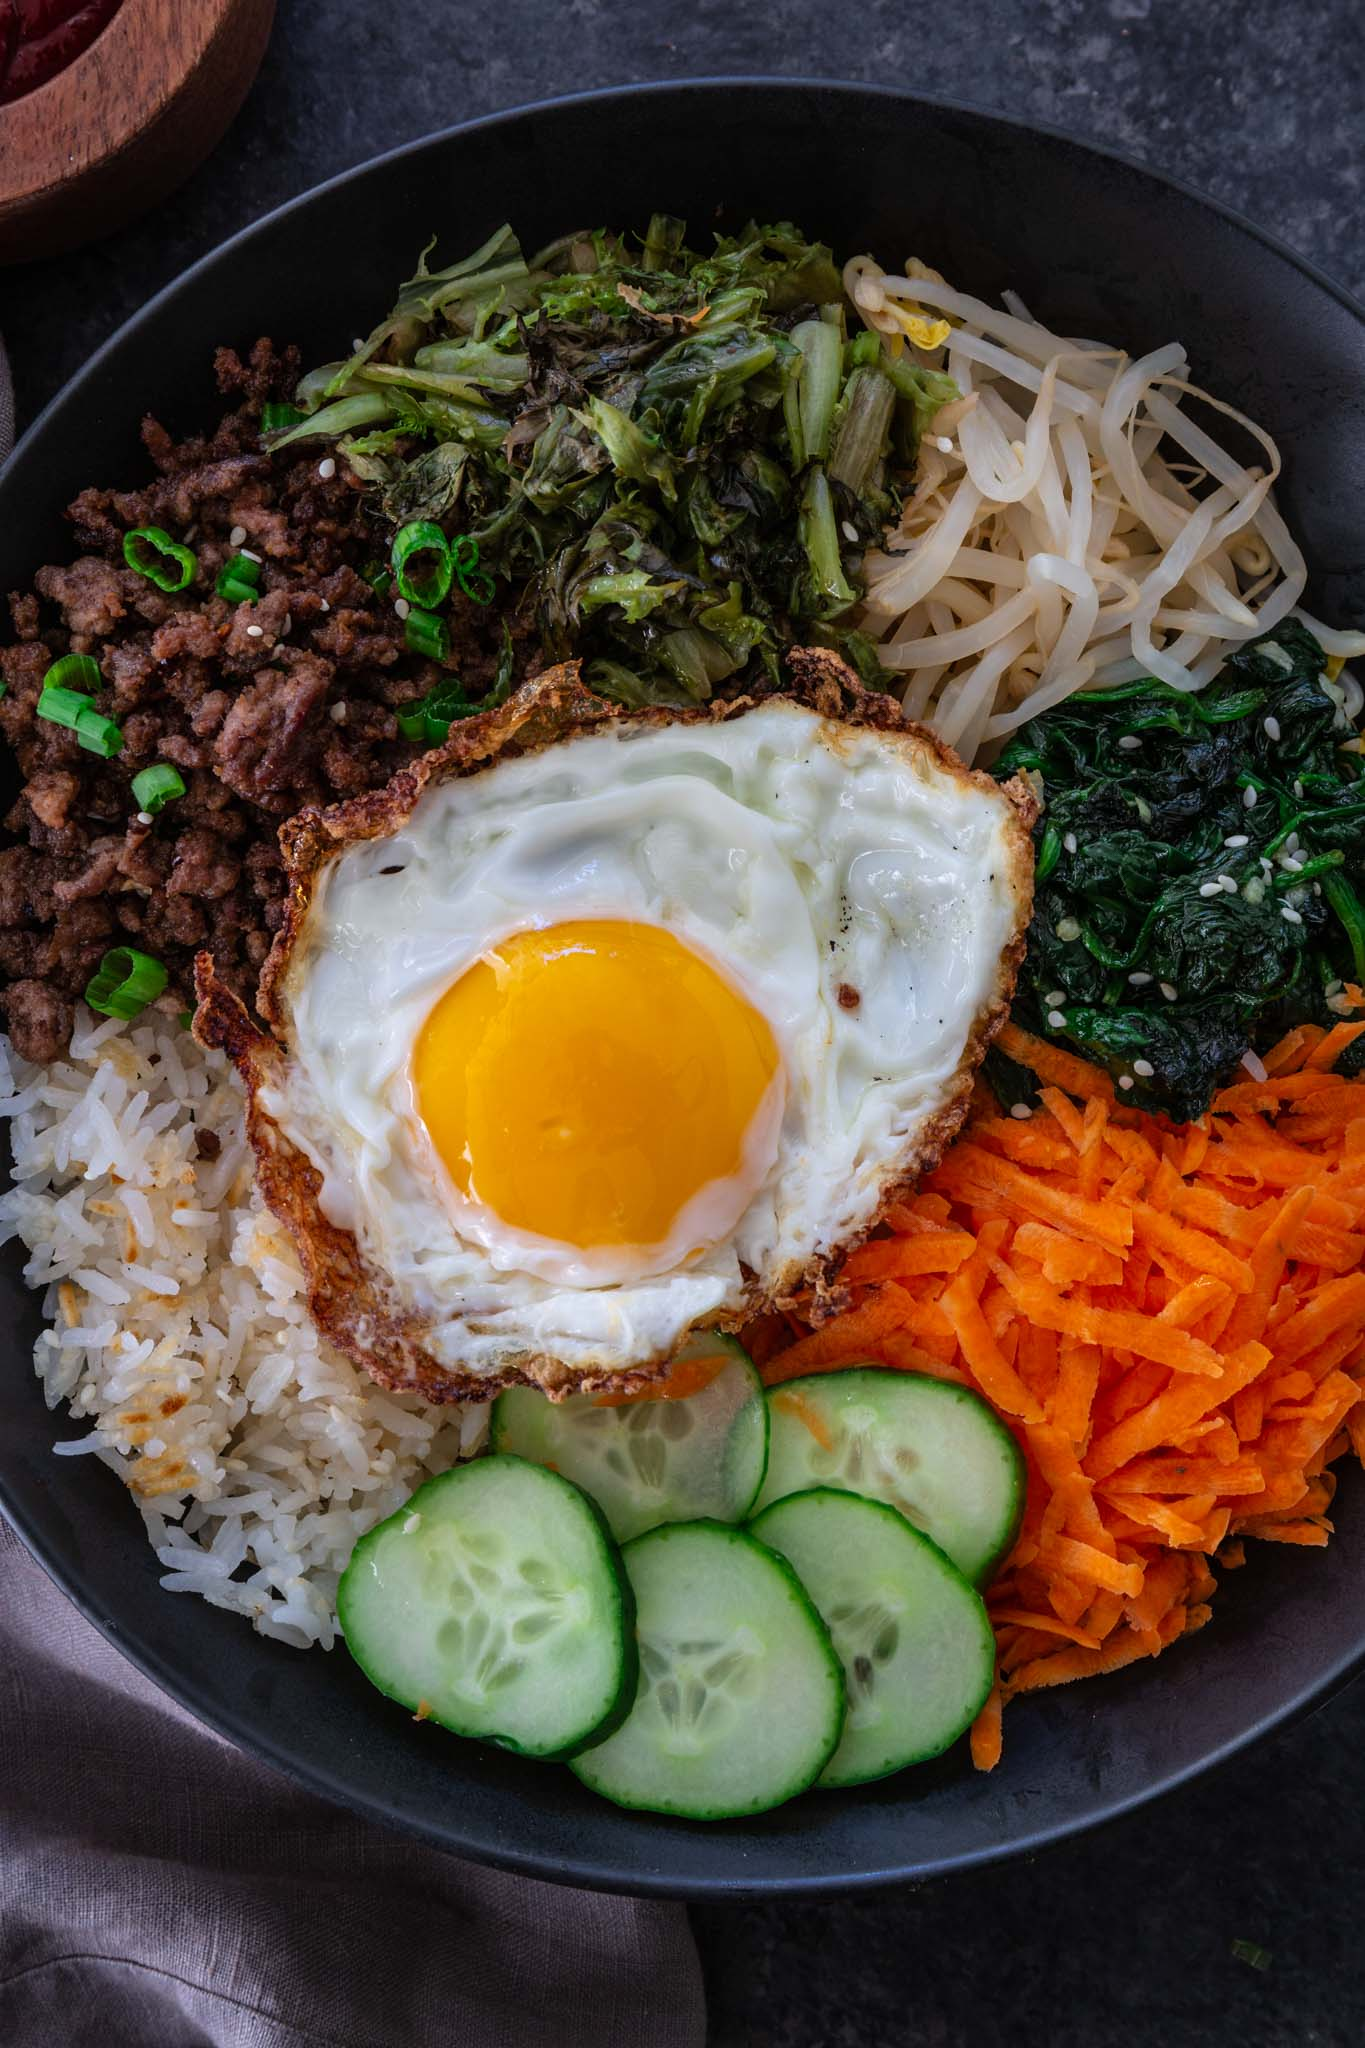 Bibimbap (Korean Beef Rice Bowl) | www.oliviascuisine.com | My version of Bibimbap, a popular Korean rice dish, takes a few shortcuts for convenience! The good news is that it's done in less than 30 minutes without compromising flavor. Serve with a fried egg on top for that extra wow factor! (Recipe and food photography by @oliviascuisine.)